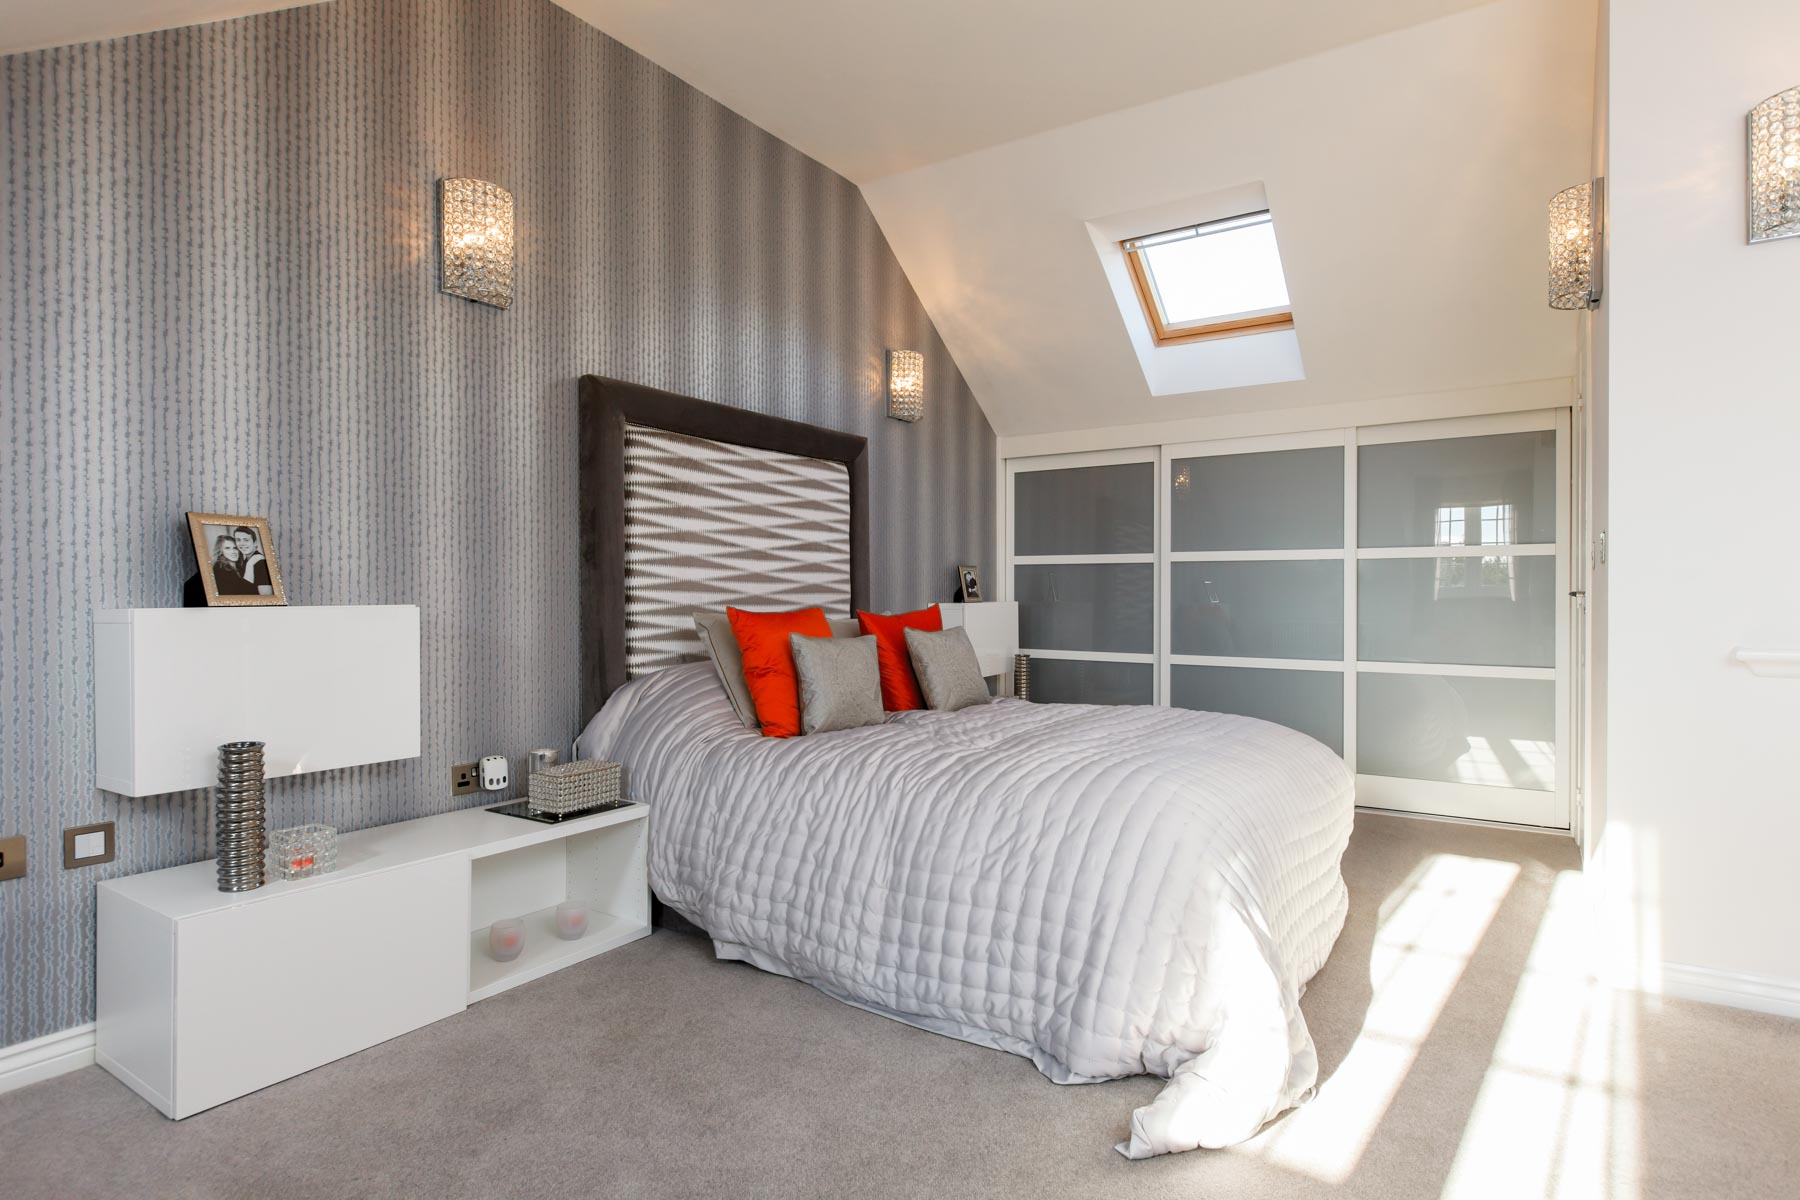 Taylor Wimpey Exeter - Cranbrook - Harton example bedroom